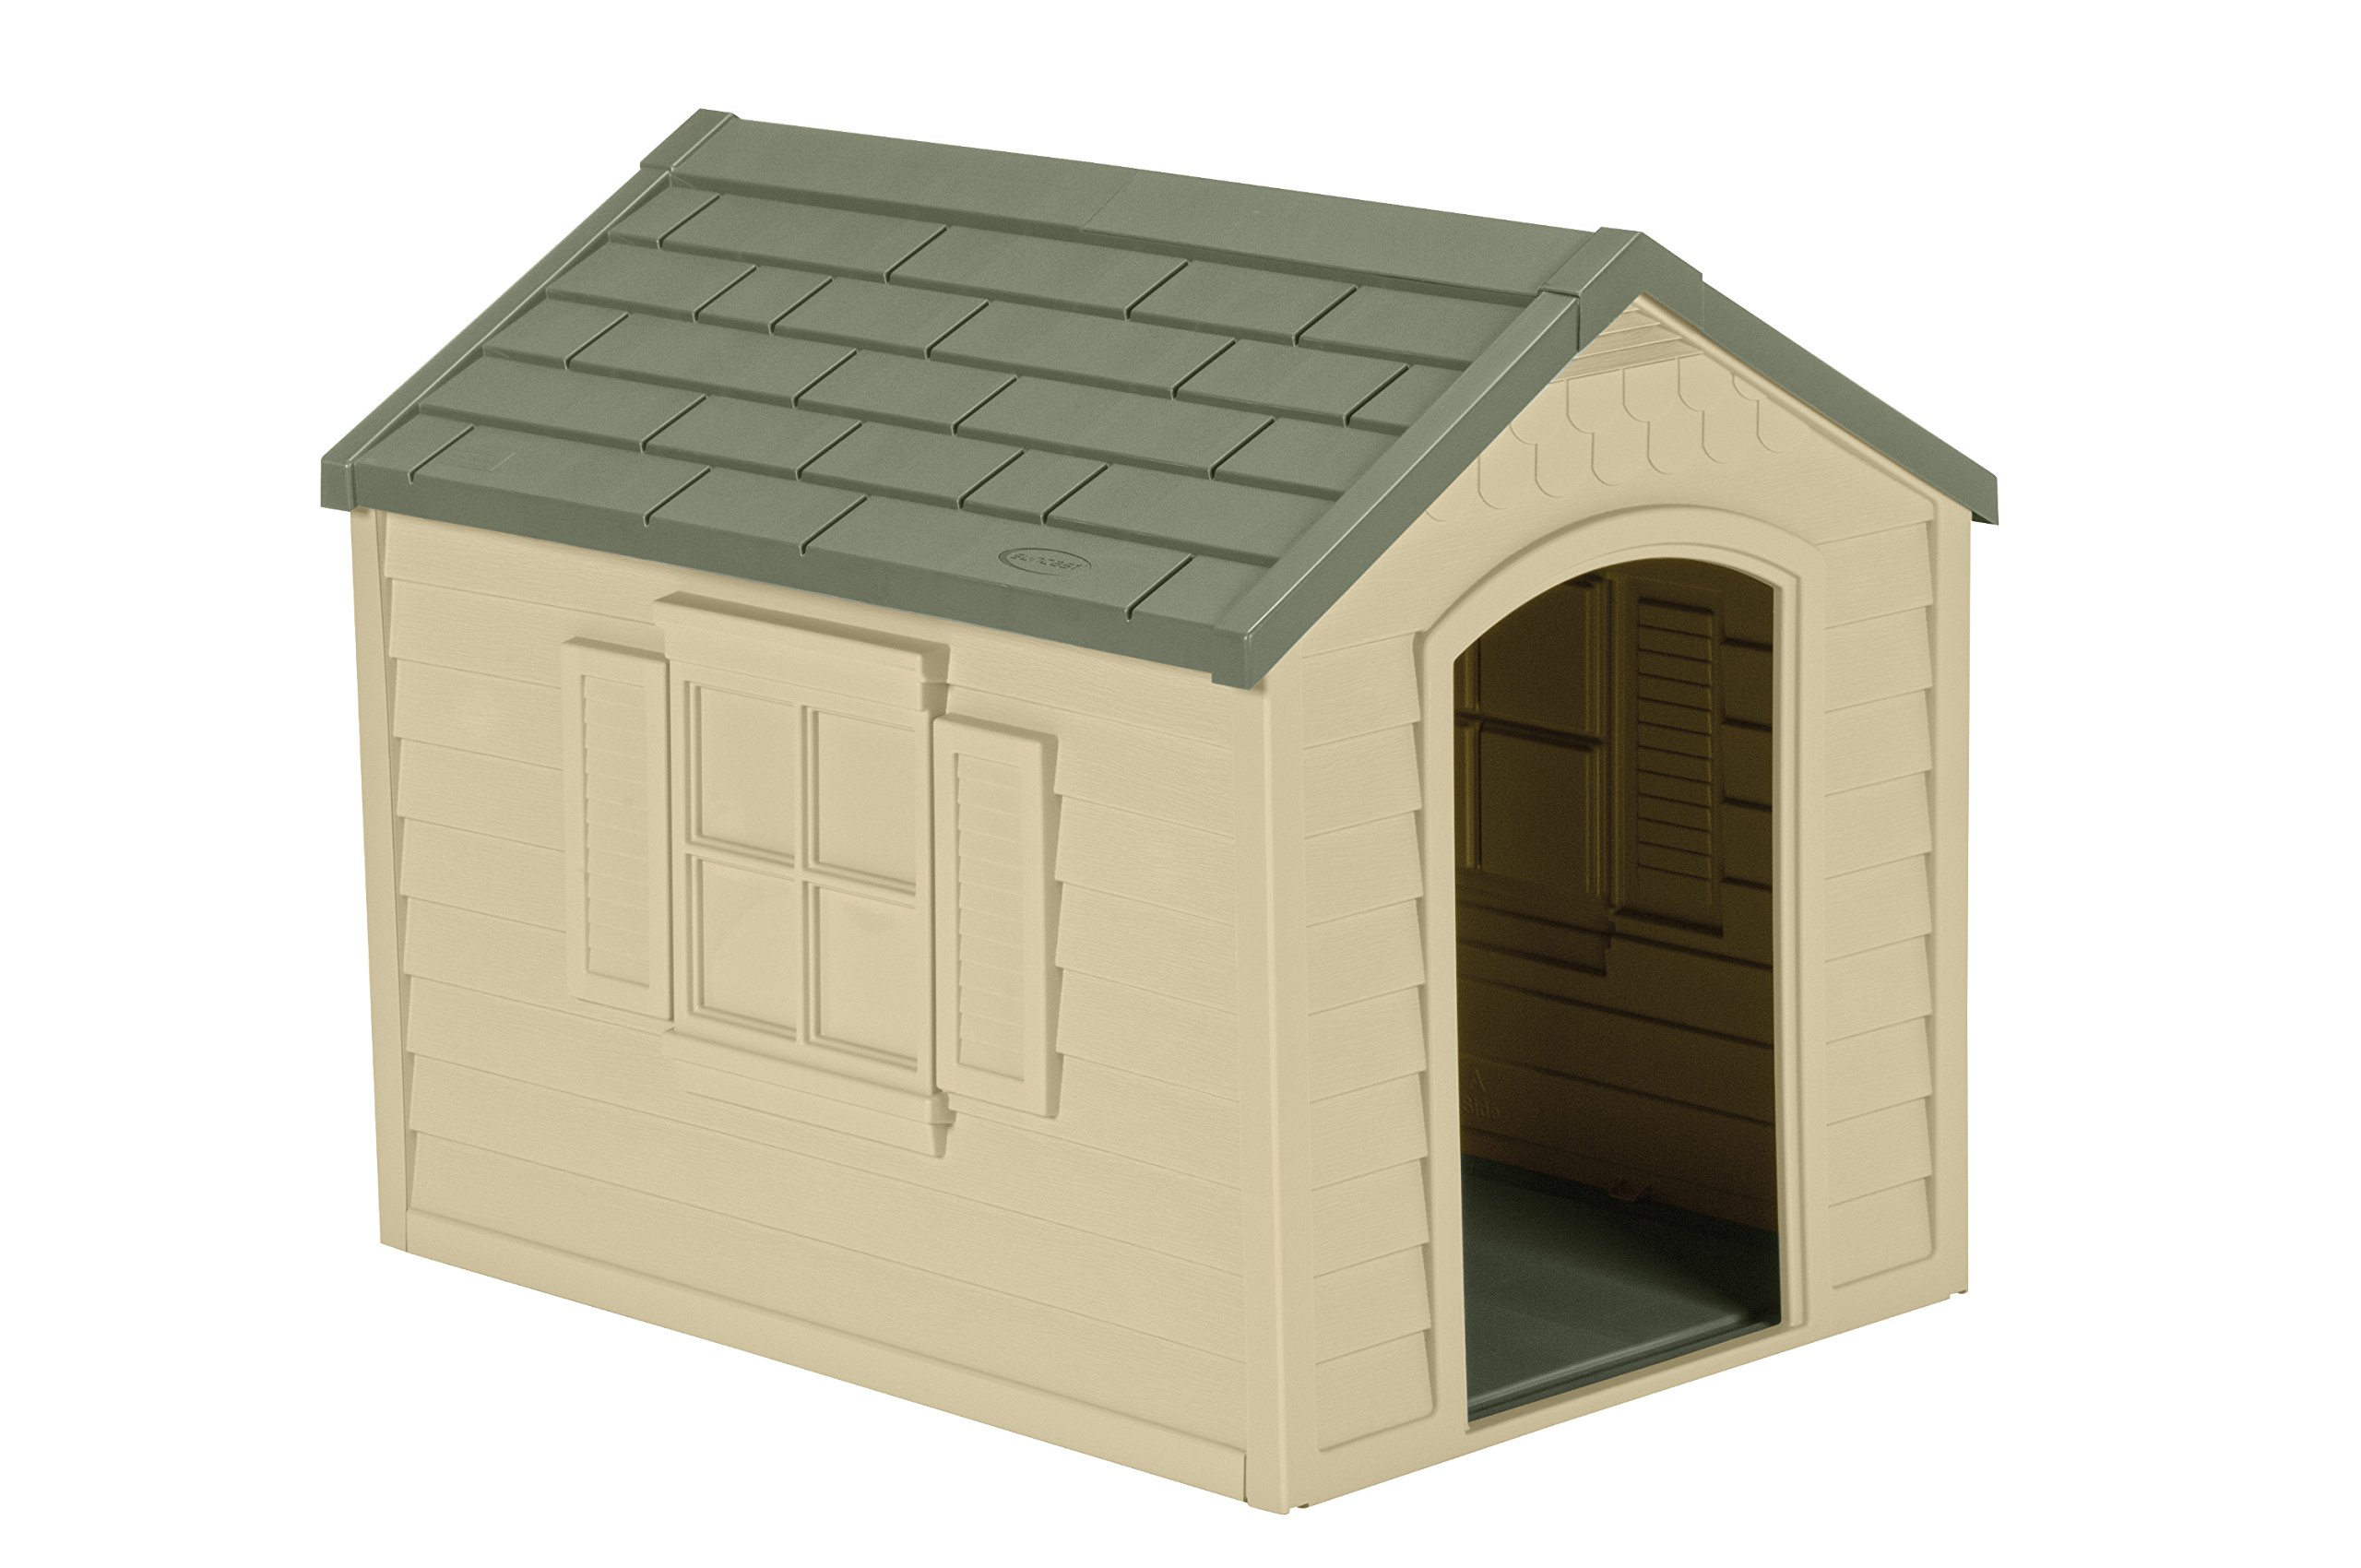 Suncast Outdoor Dog House with Door - Water Resistant Dog House for Small to Large Sized Dogs - Easy to Assemble - Perfect for Backyards by Suncast